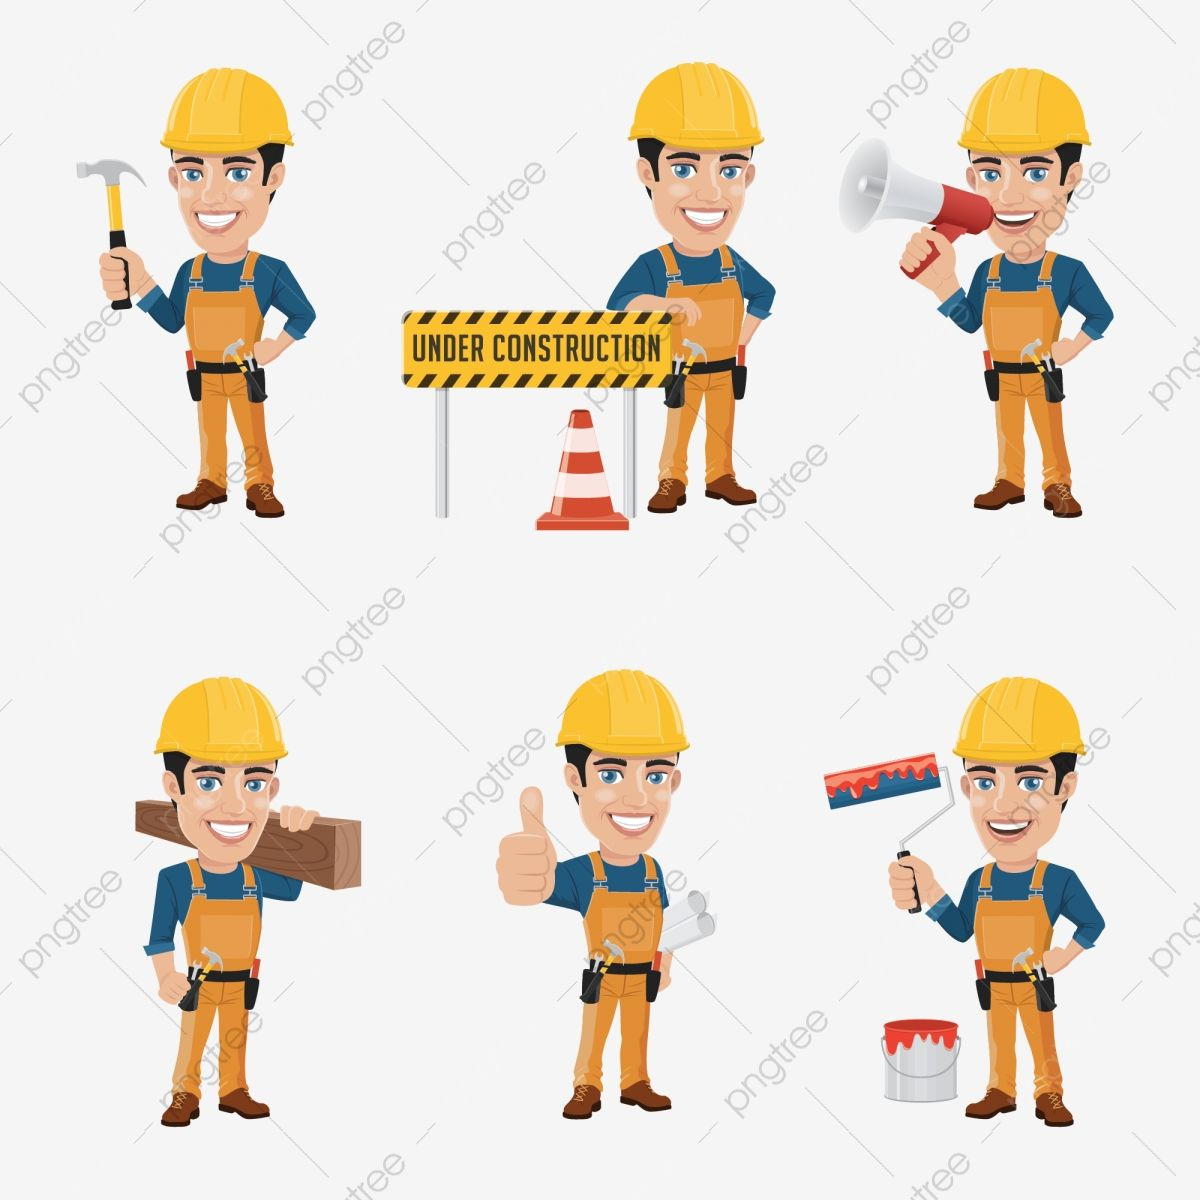 Set Of Construction Worker Character In 6 Different Poses Construction Worker Clipart Construction Worker Png And Vector With Transparent Background For Free Construction Worker Construction Character Illustration